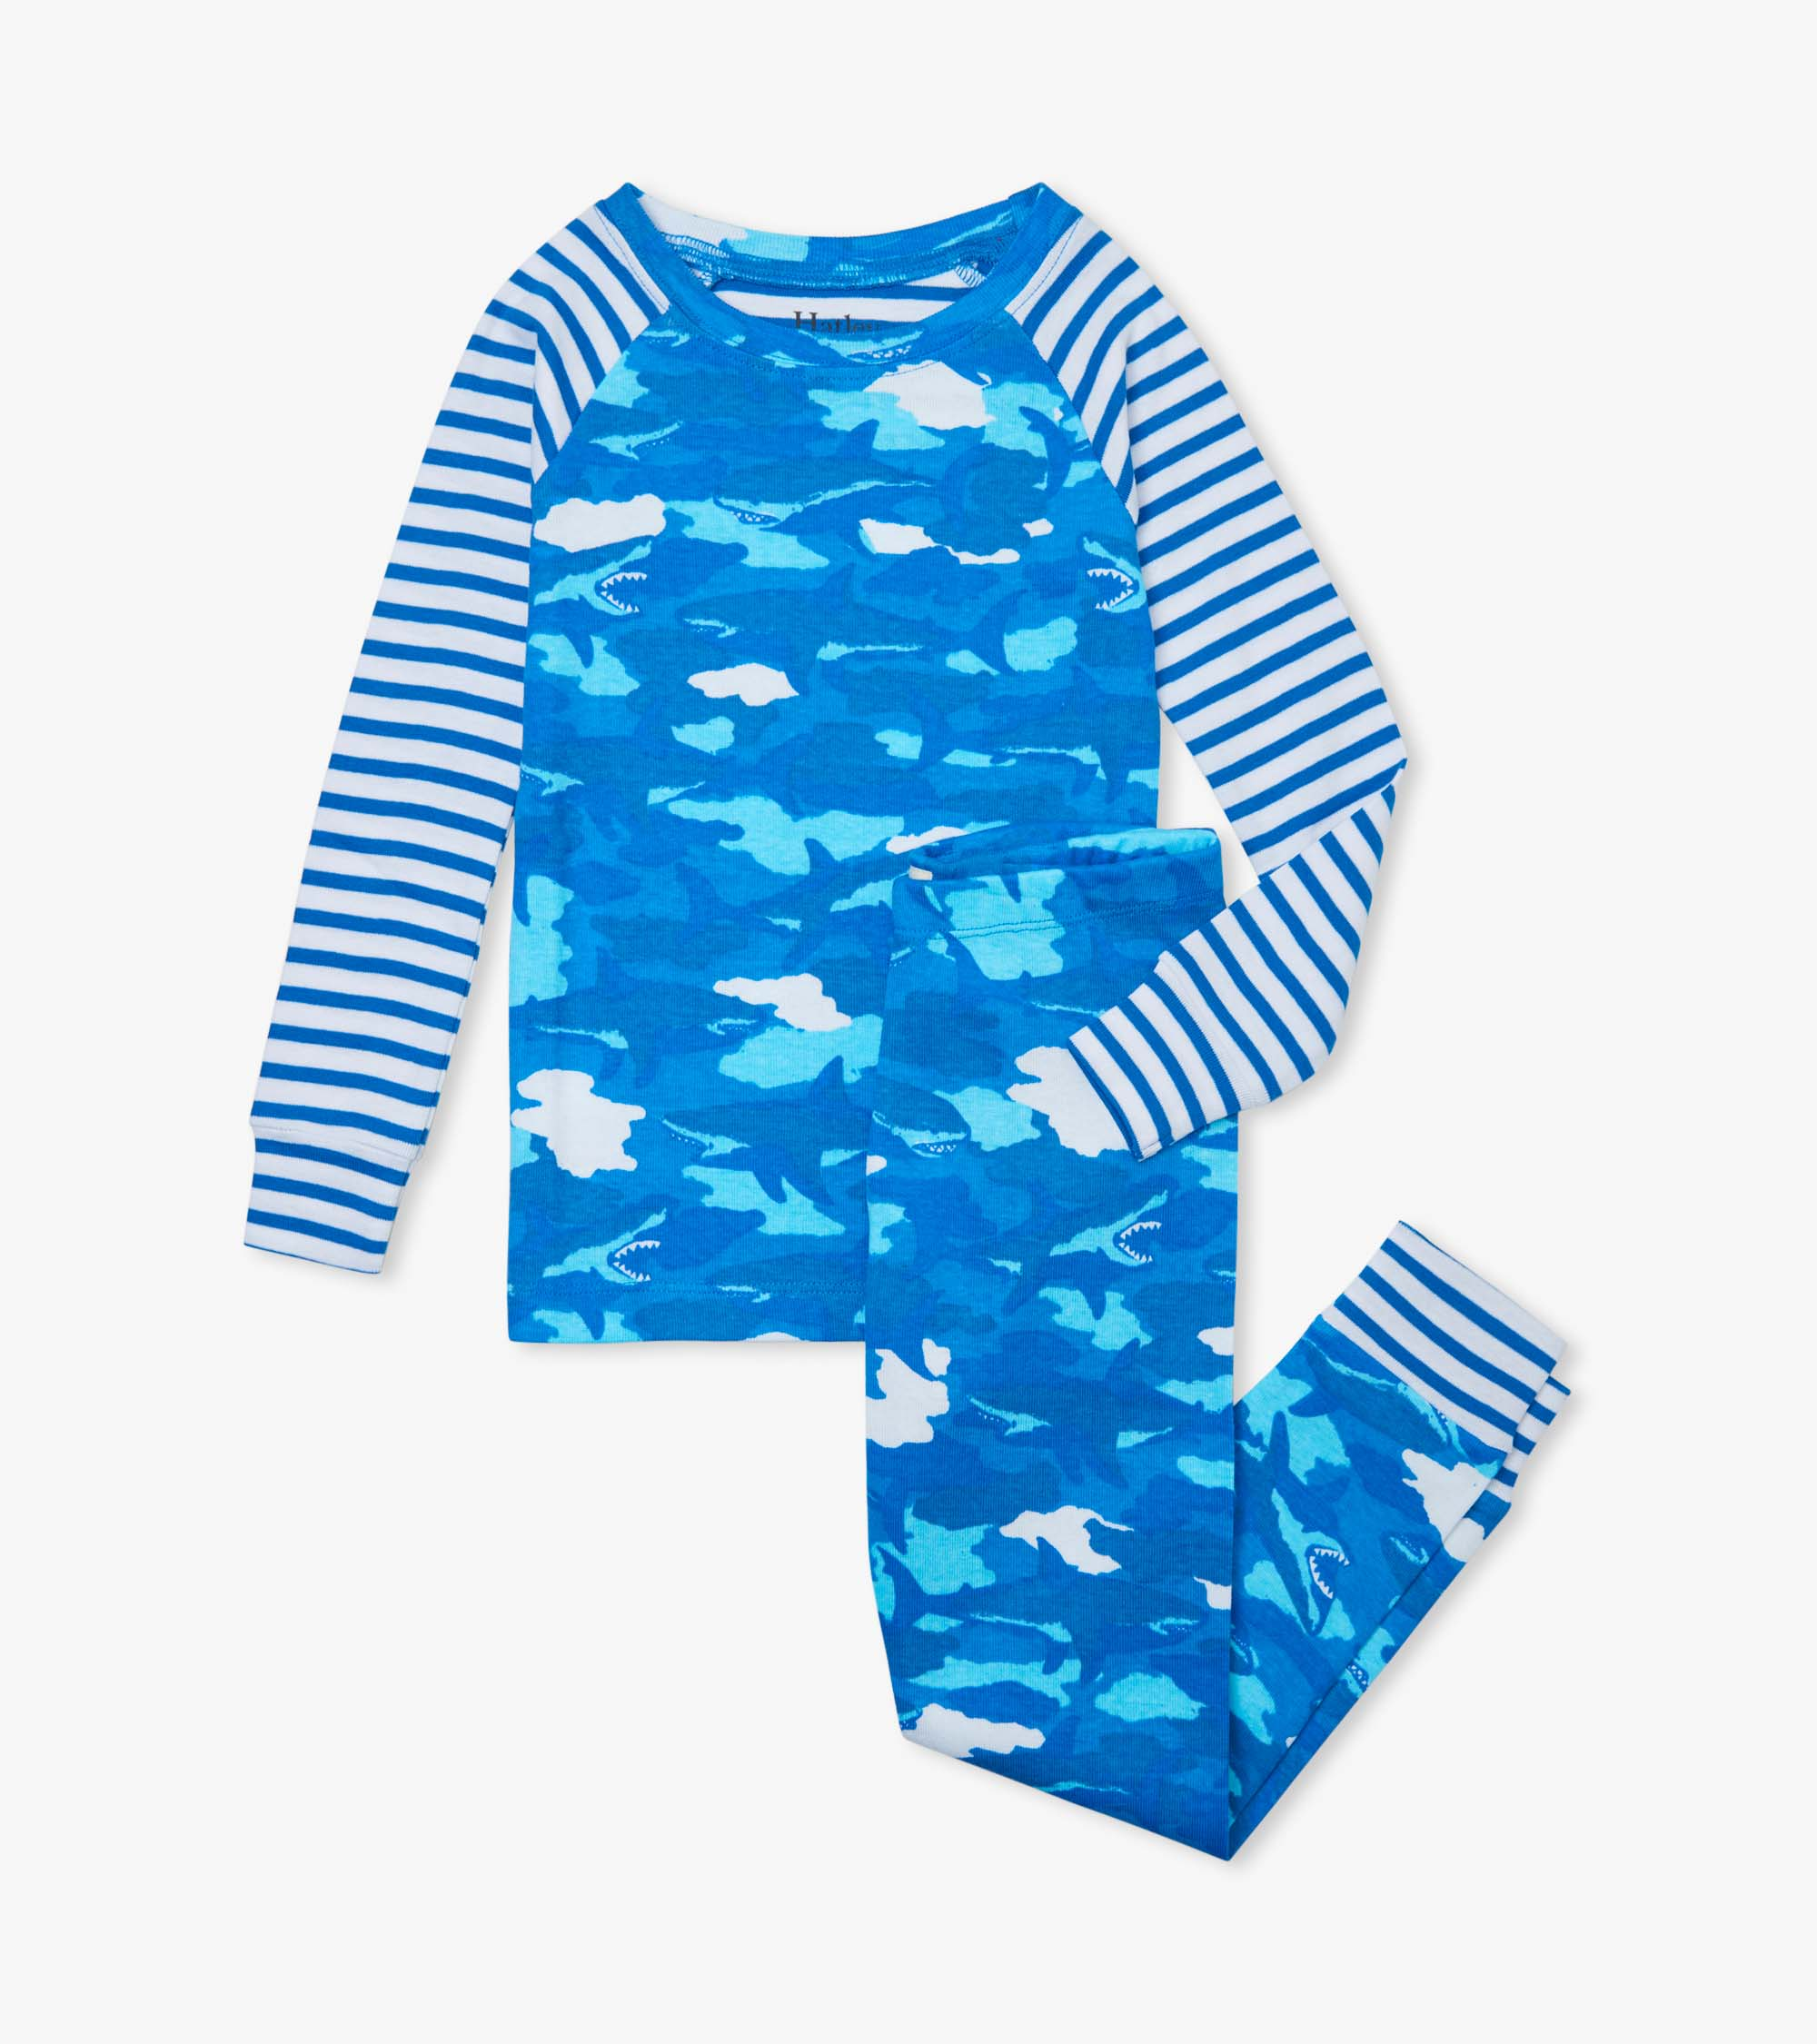 Hatley Shark Camo Organic Cotton Ragland Pyjama Set